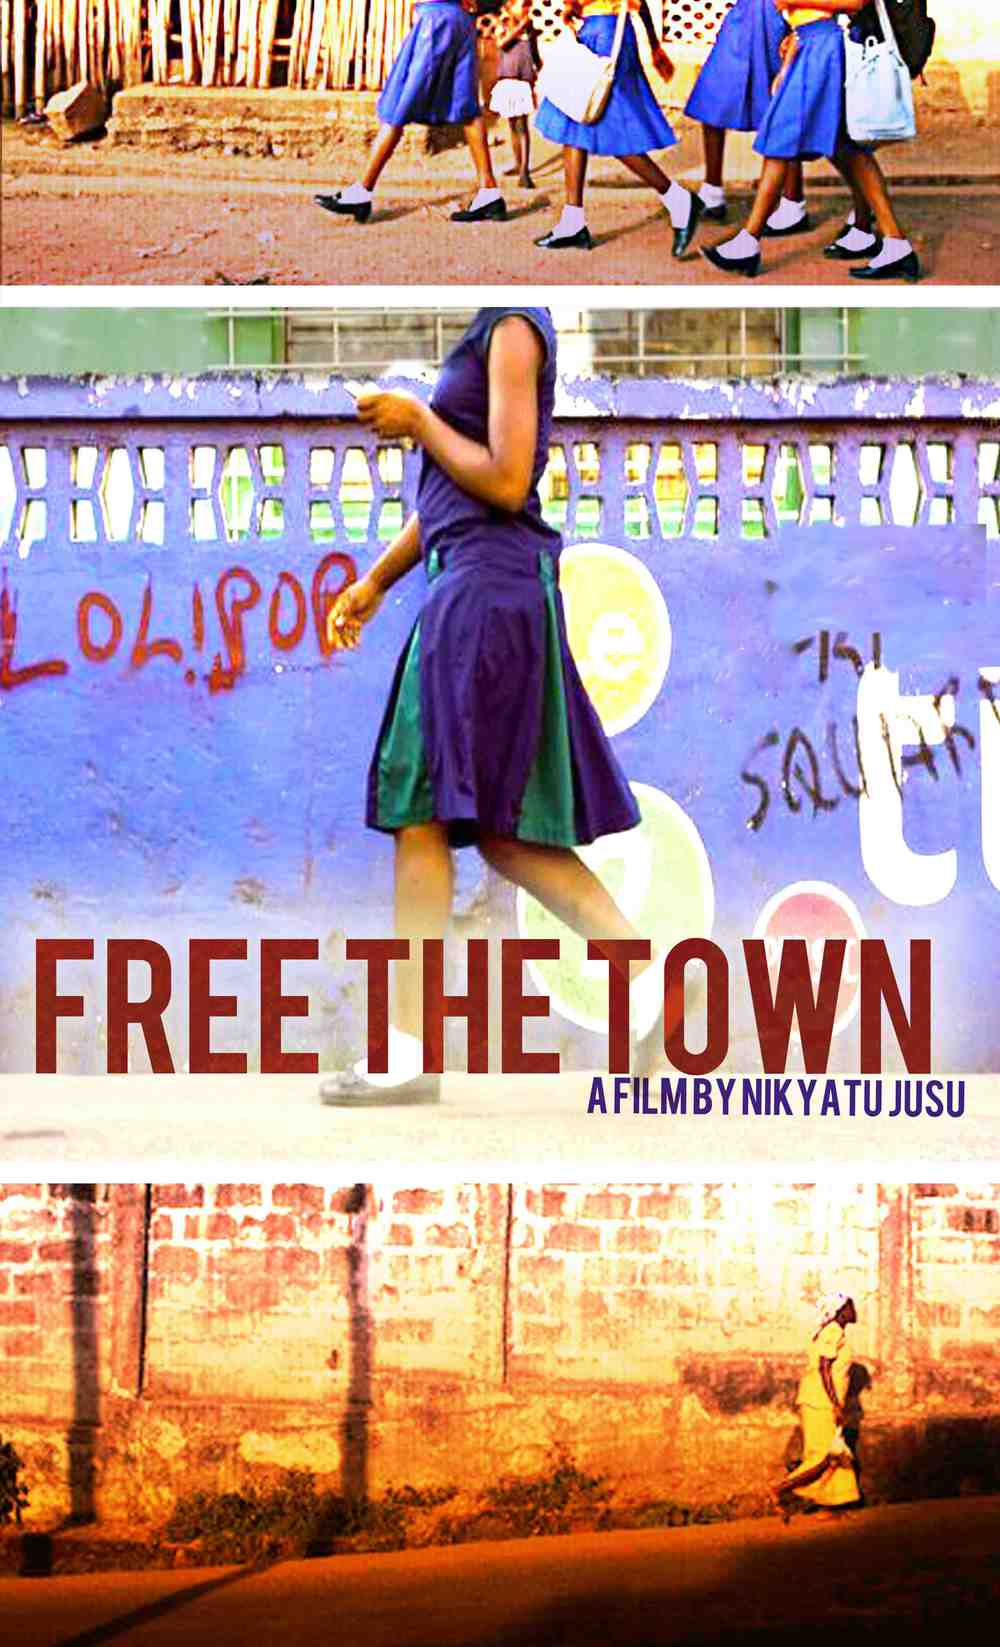 FREE THE TOWN poster art